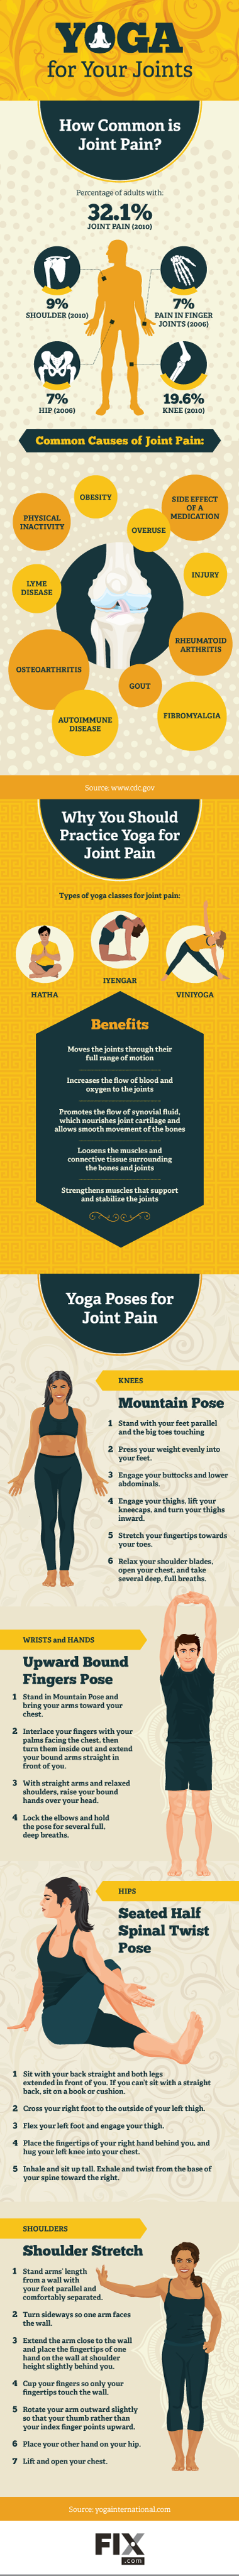 Yoga For Your Joints #infographic